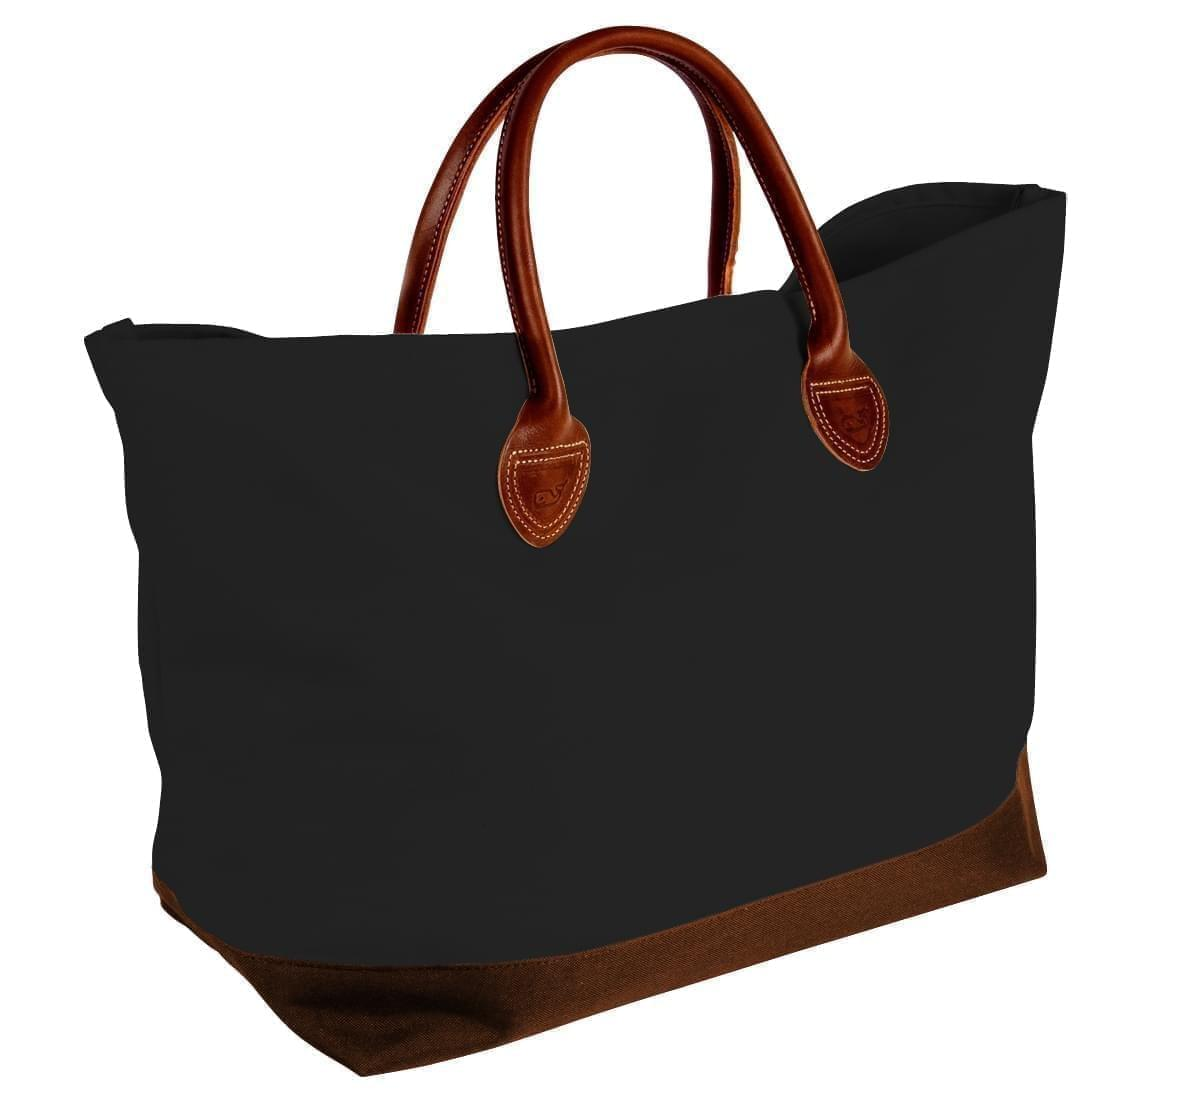 USA Made Canvas Leather Handle Totes, Black-Brown, 10899-DH9